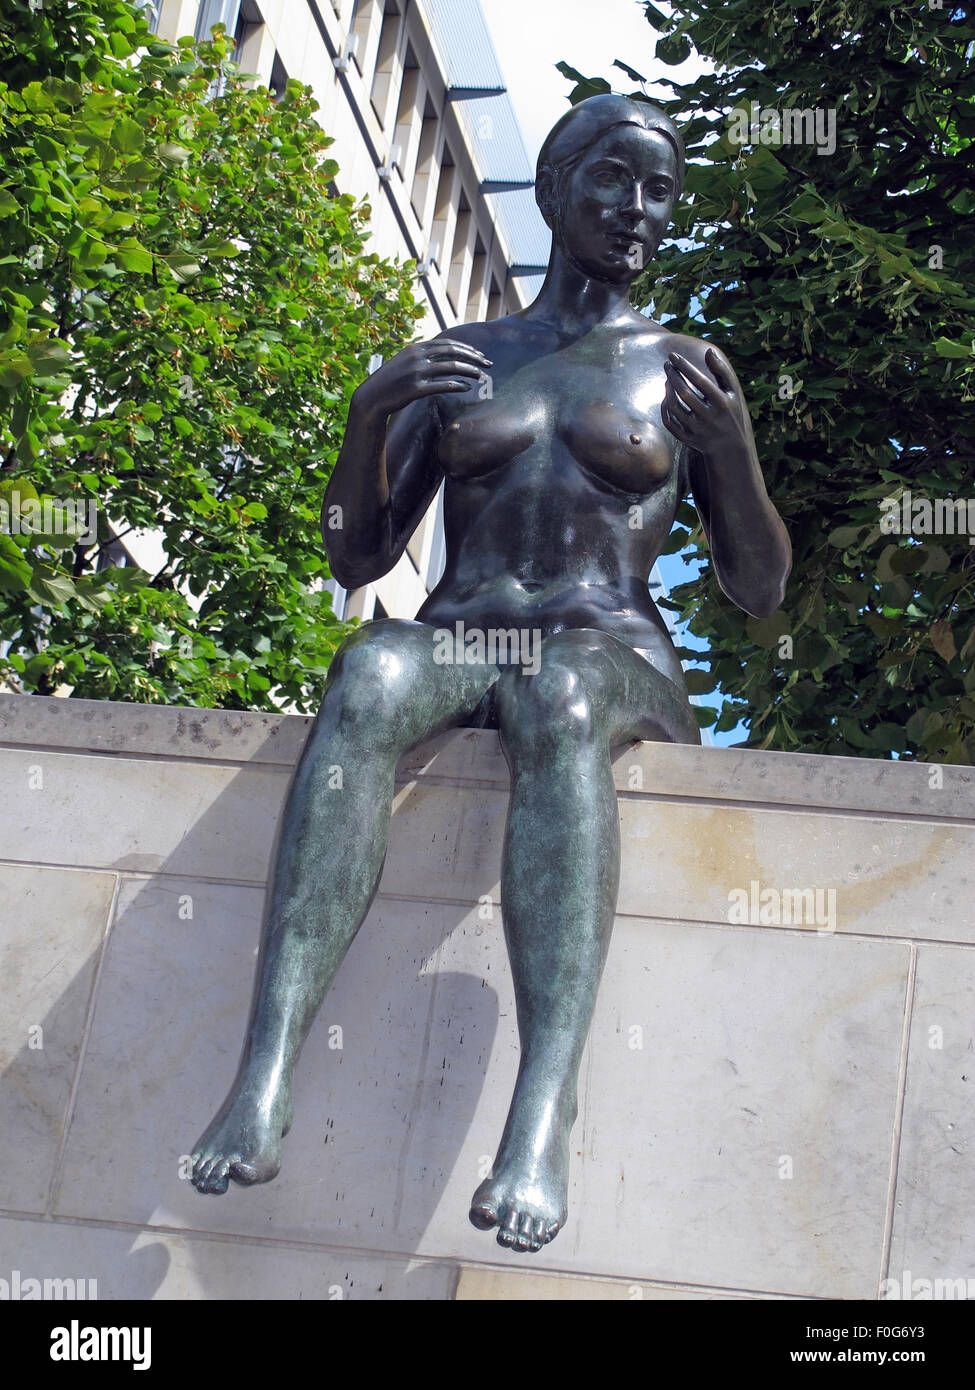 Three girls and a boy by Wilfried Fitzenreiter - Statue by the Spree River, Moabit, Berlin, Germany with building - Stock Image